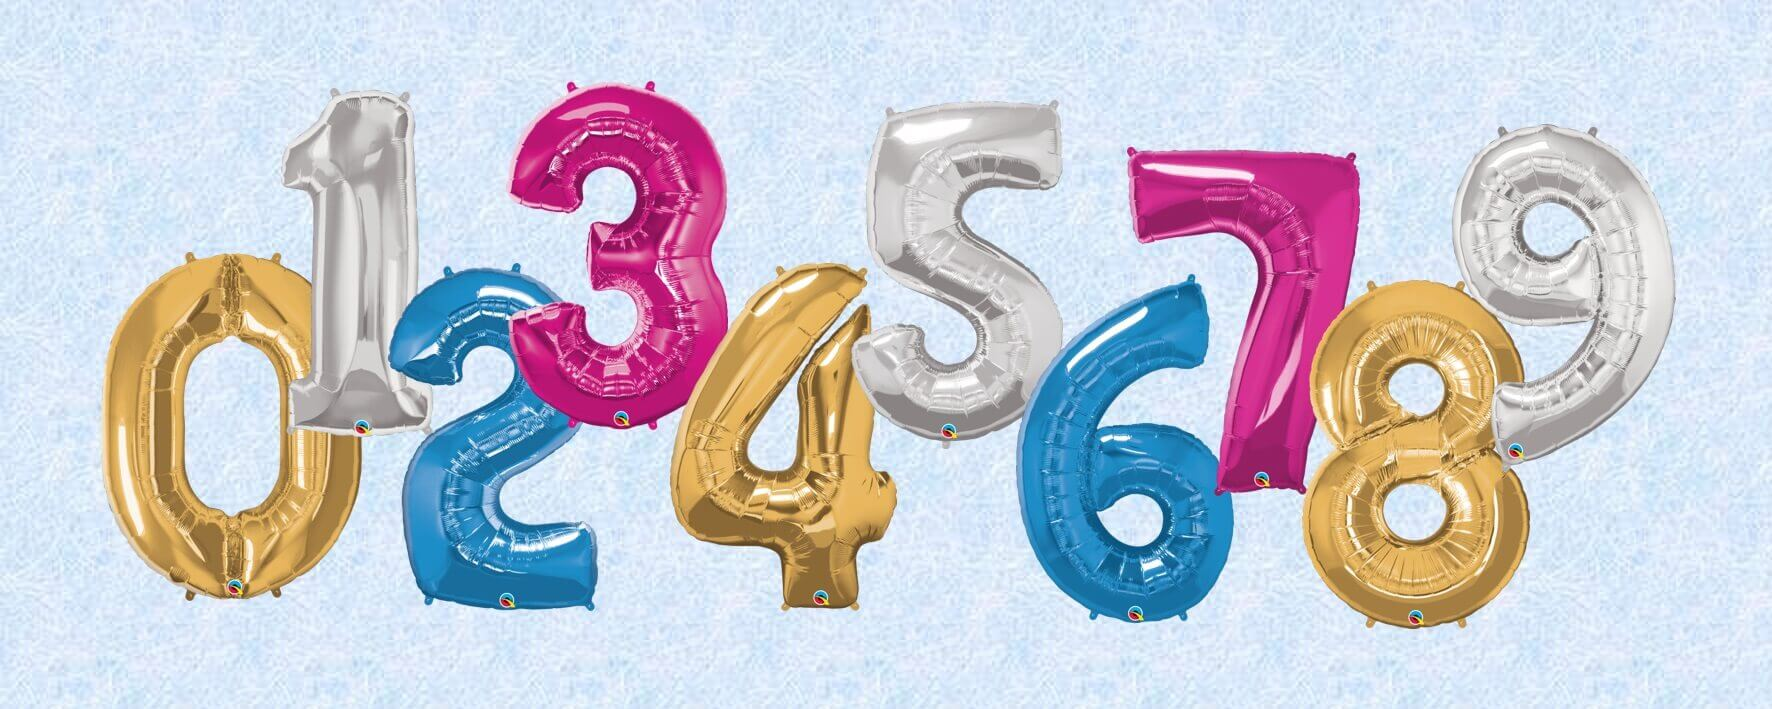 Large foil number helium filled balloons Tamworth party shop